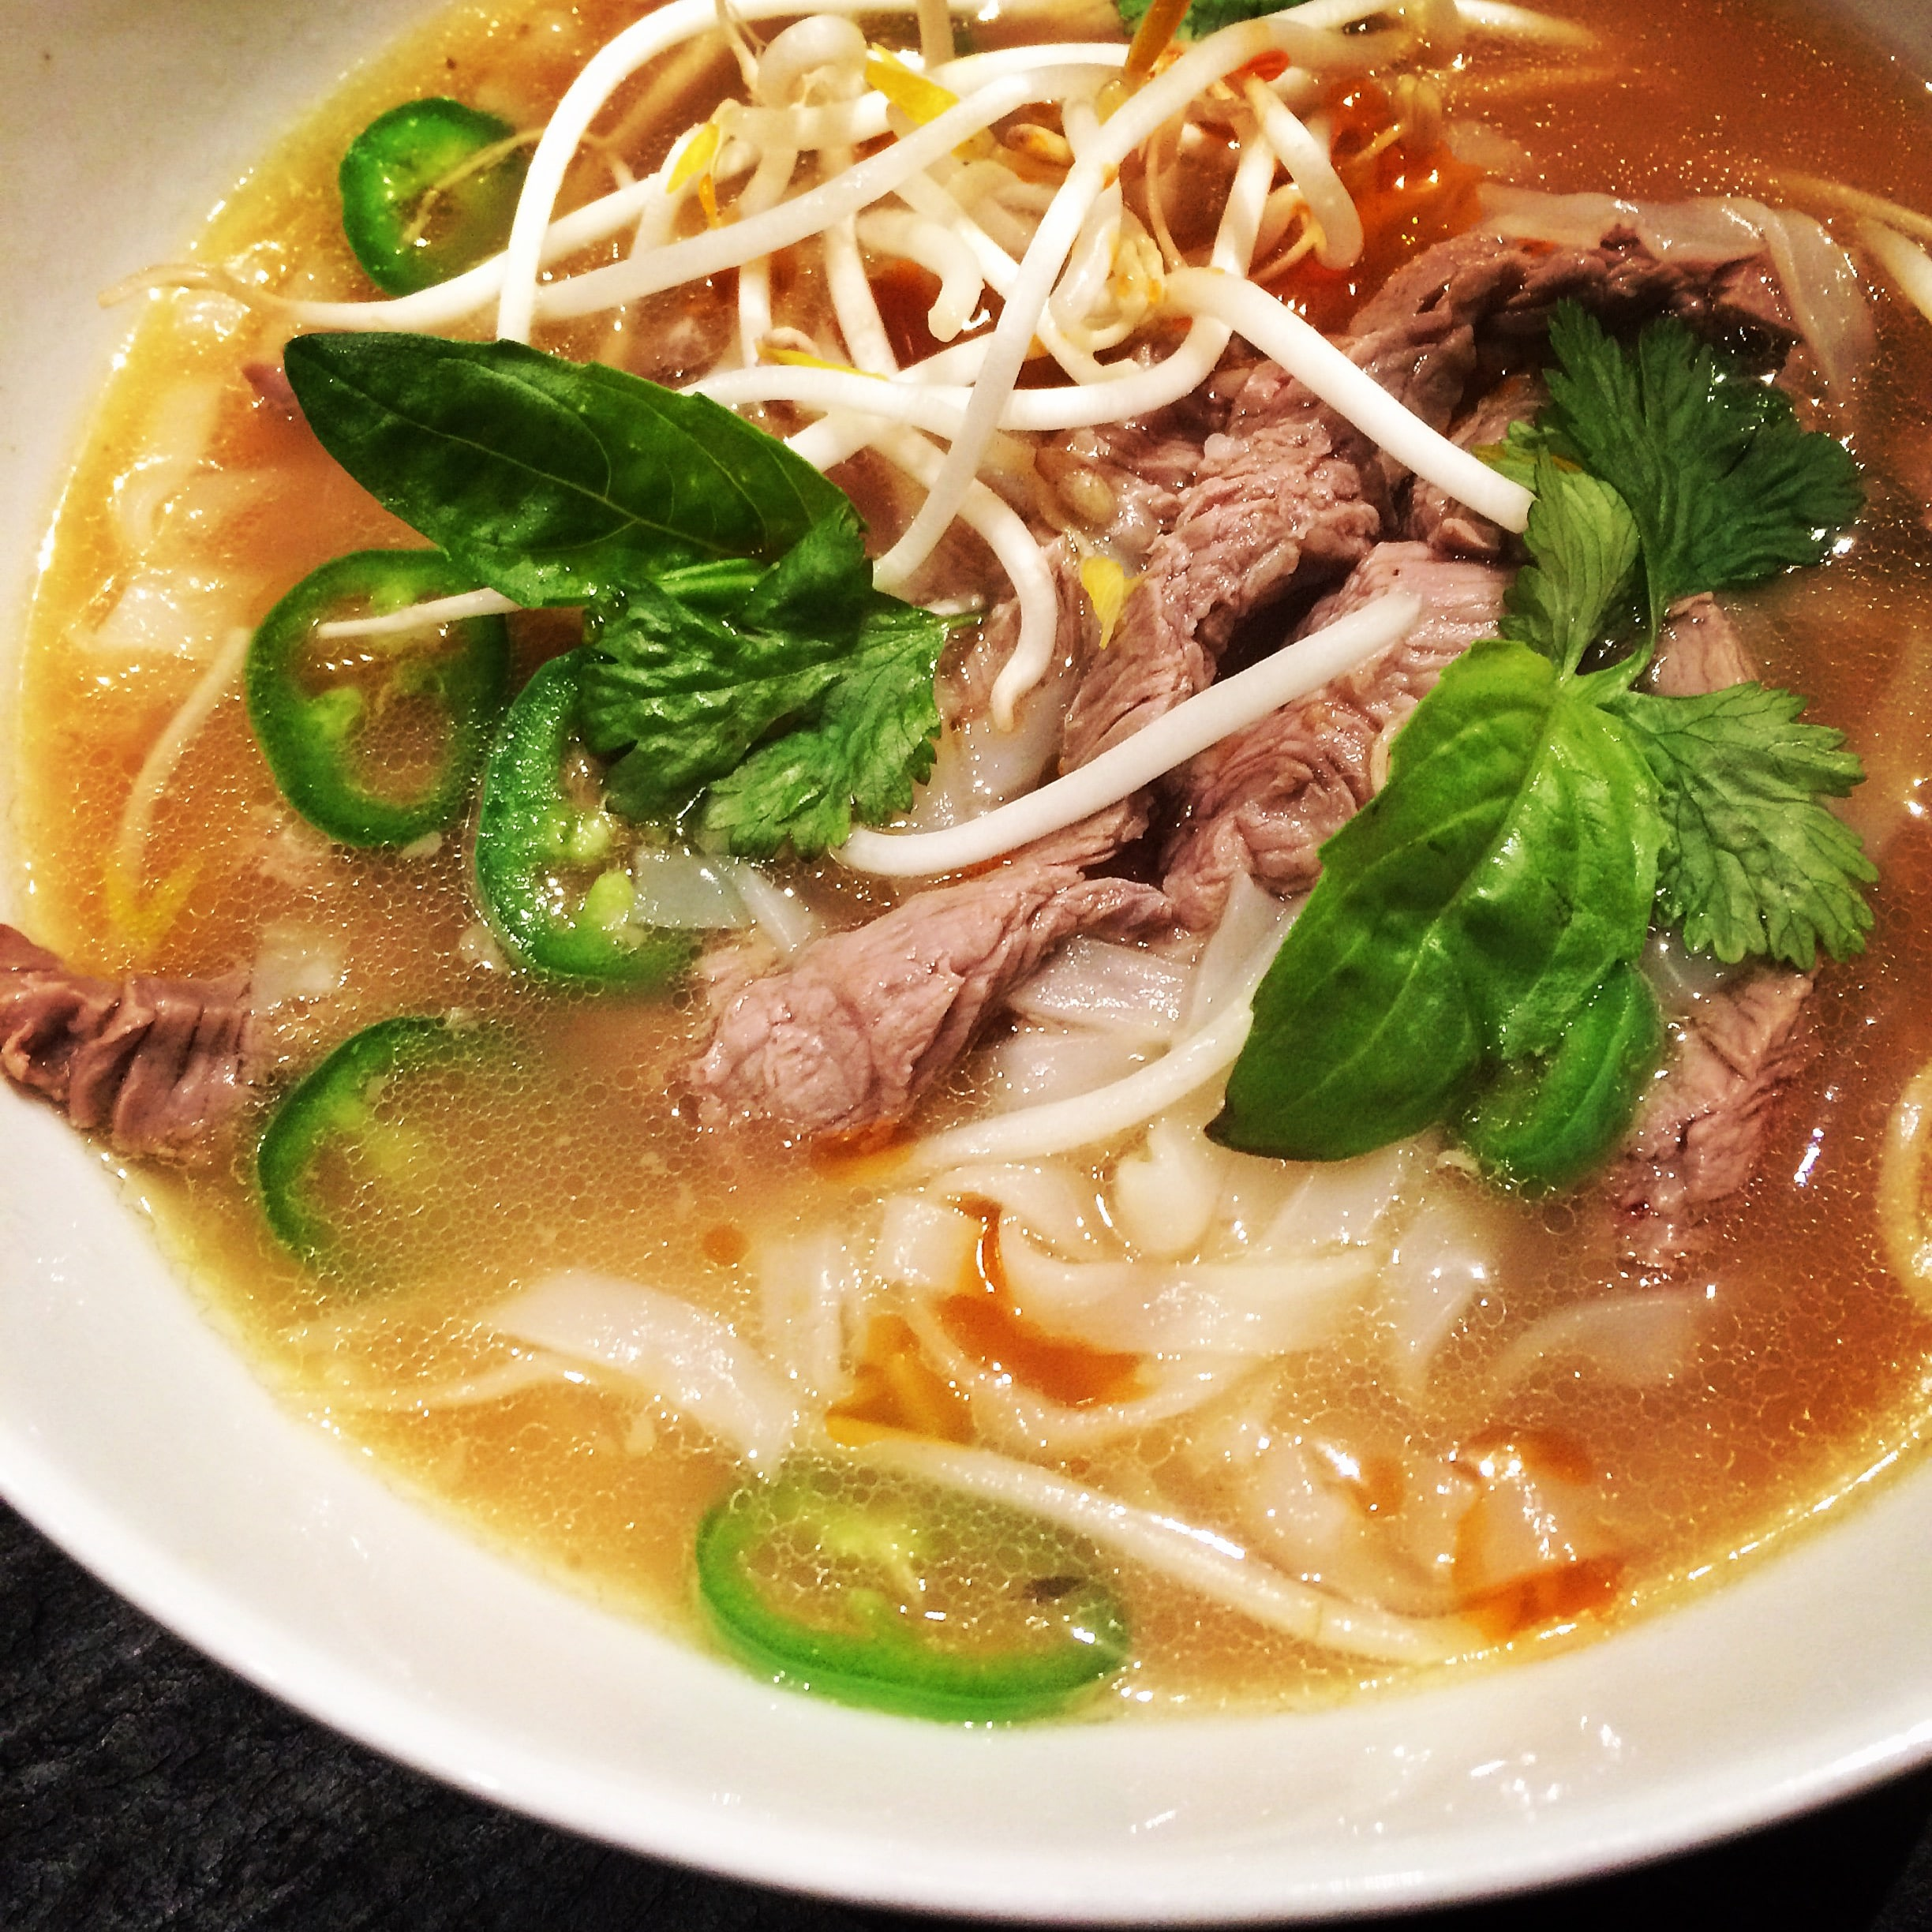 Wilfred Wong's Pho